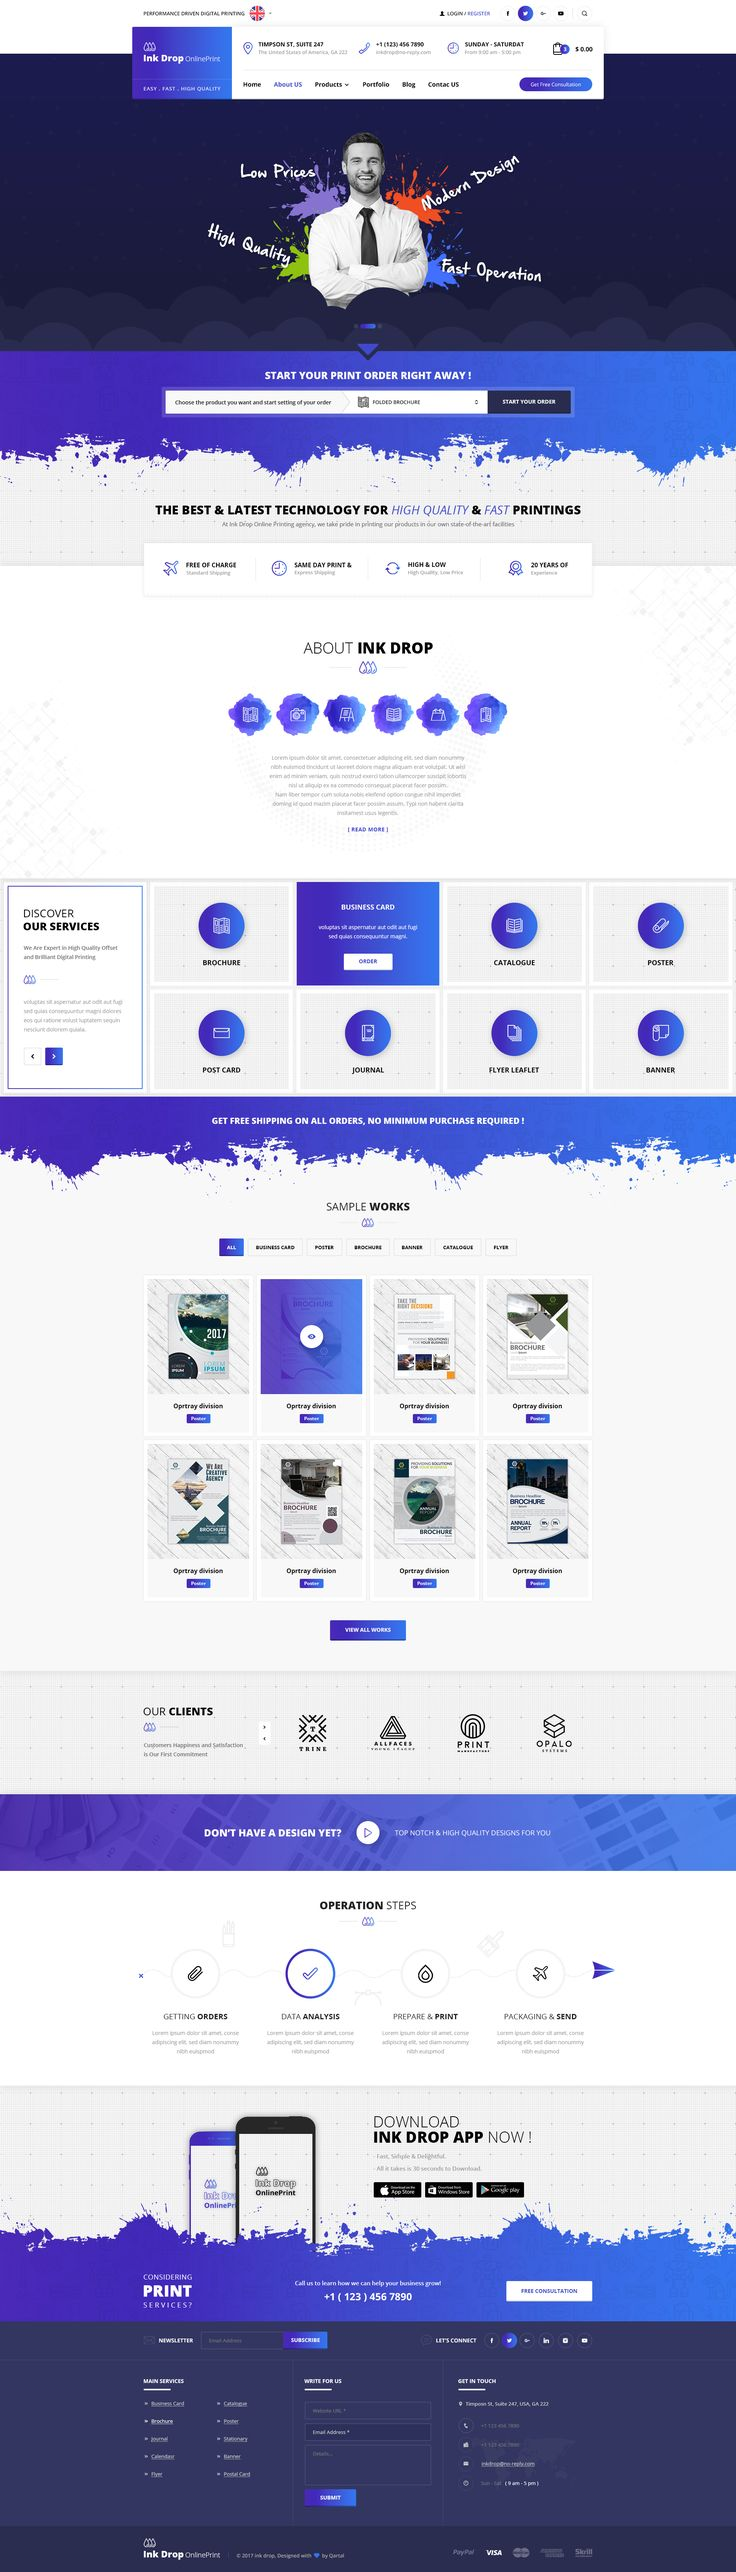 Ink Drop - Online Printing Platform PSD Template #online print #print #print services • Download ➝ https://themeforest.net/item/ink-drop-online-printing-platform-psd-template/20503483?ref=pxcr